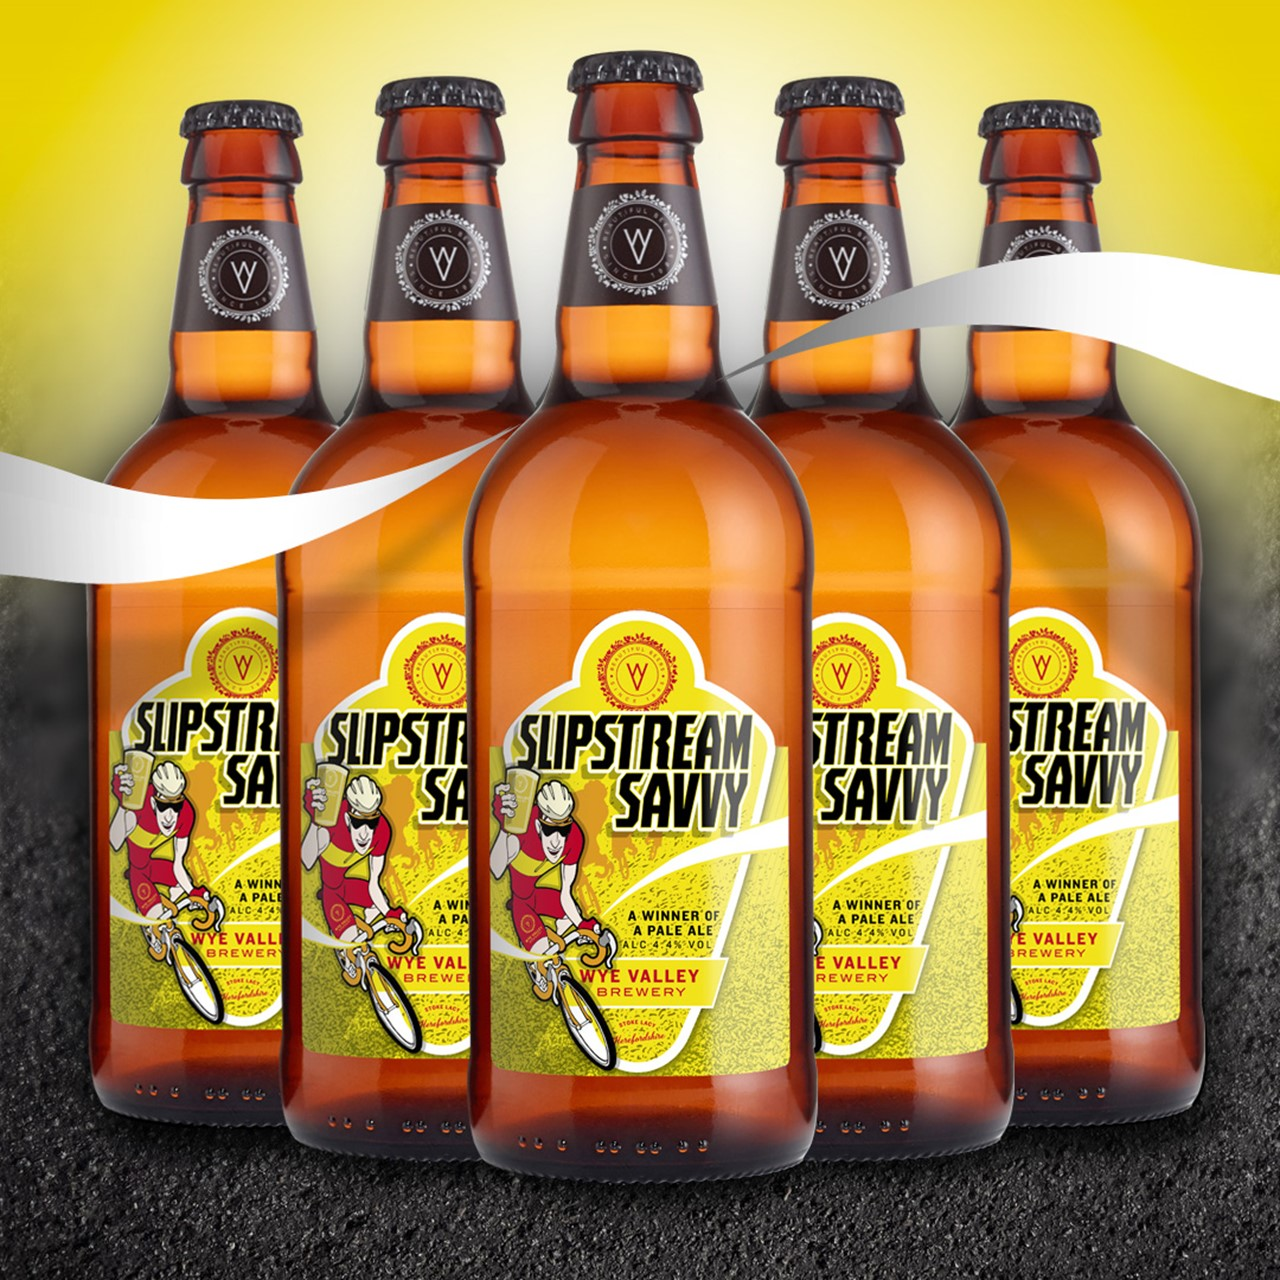 Slipstream Savvy - A Winning Pale Ale